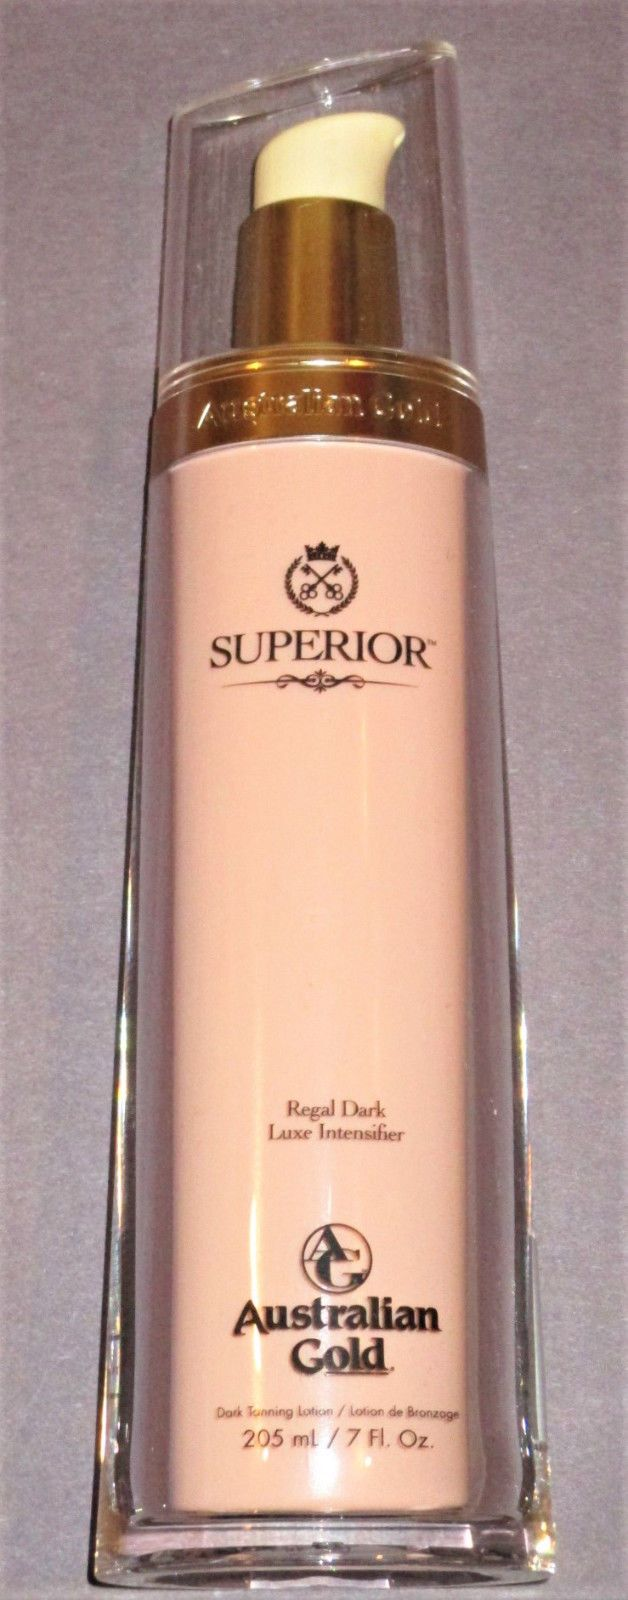 Tanning Lotion: 2017 Australian Gold Superior Regal Dark Luxe Intensifier Tanning Bed Lotion -> BUY IT NOW ONLY: $54.4 on eBay!